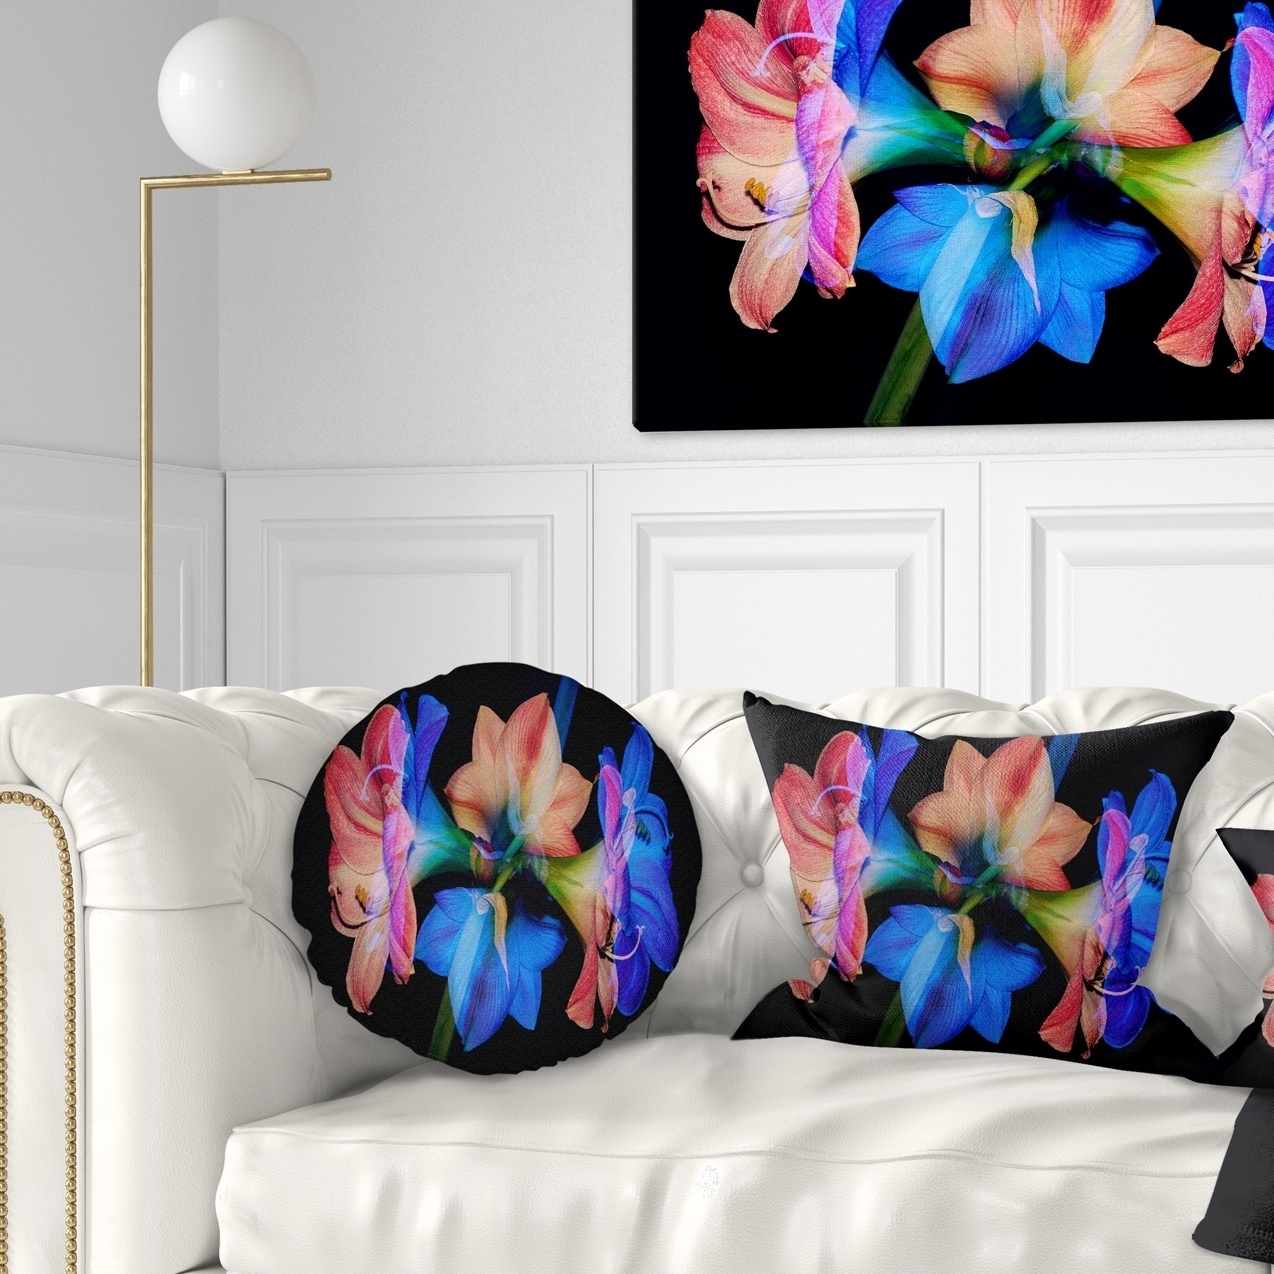 Sofa Throw Pillow 20 Designart CU15016-20-20-C Abstract Blue Red Flower on Black Floral Round Cushion Cover for Living Room